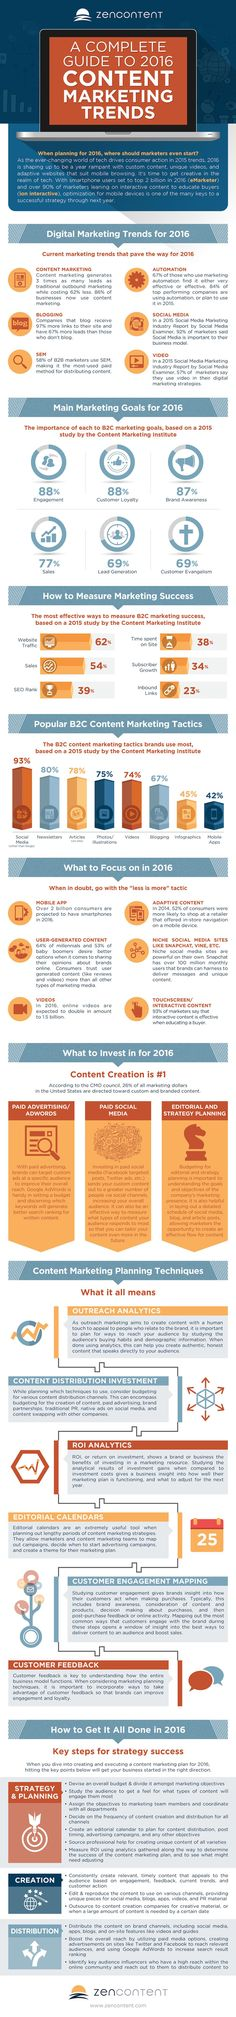 A Complete Guide To 2016 Content Marketing Trends New infographic reveals content marketing budgets benchmarks and the key trends for 2016 Inbound Marketing, Marketing Trends, Marketing Direct, Marketing Budget, Content Marketing Strategy, Mobile Marketing, Marketing Digital, Internet Marketing, Online Marketing